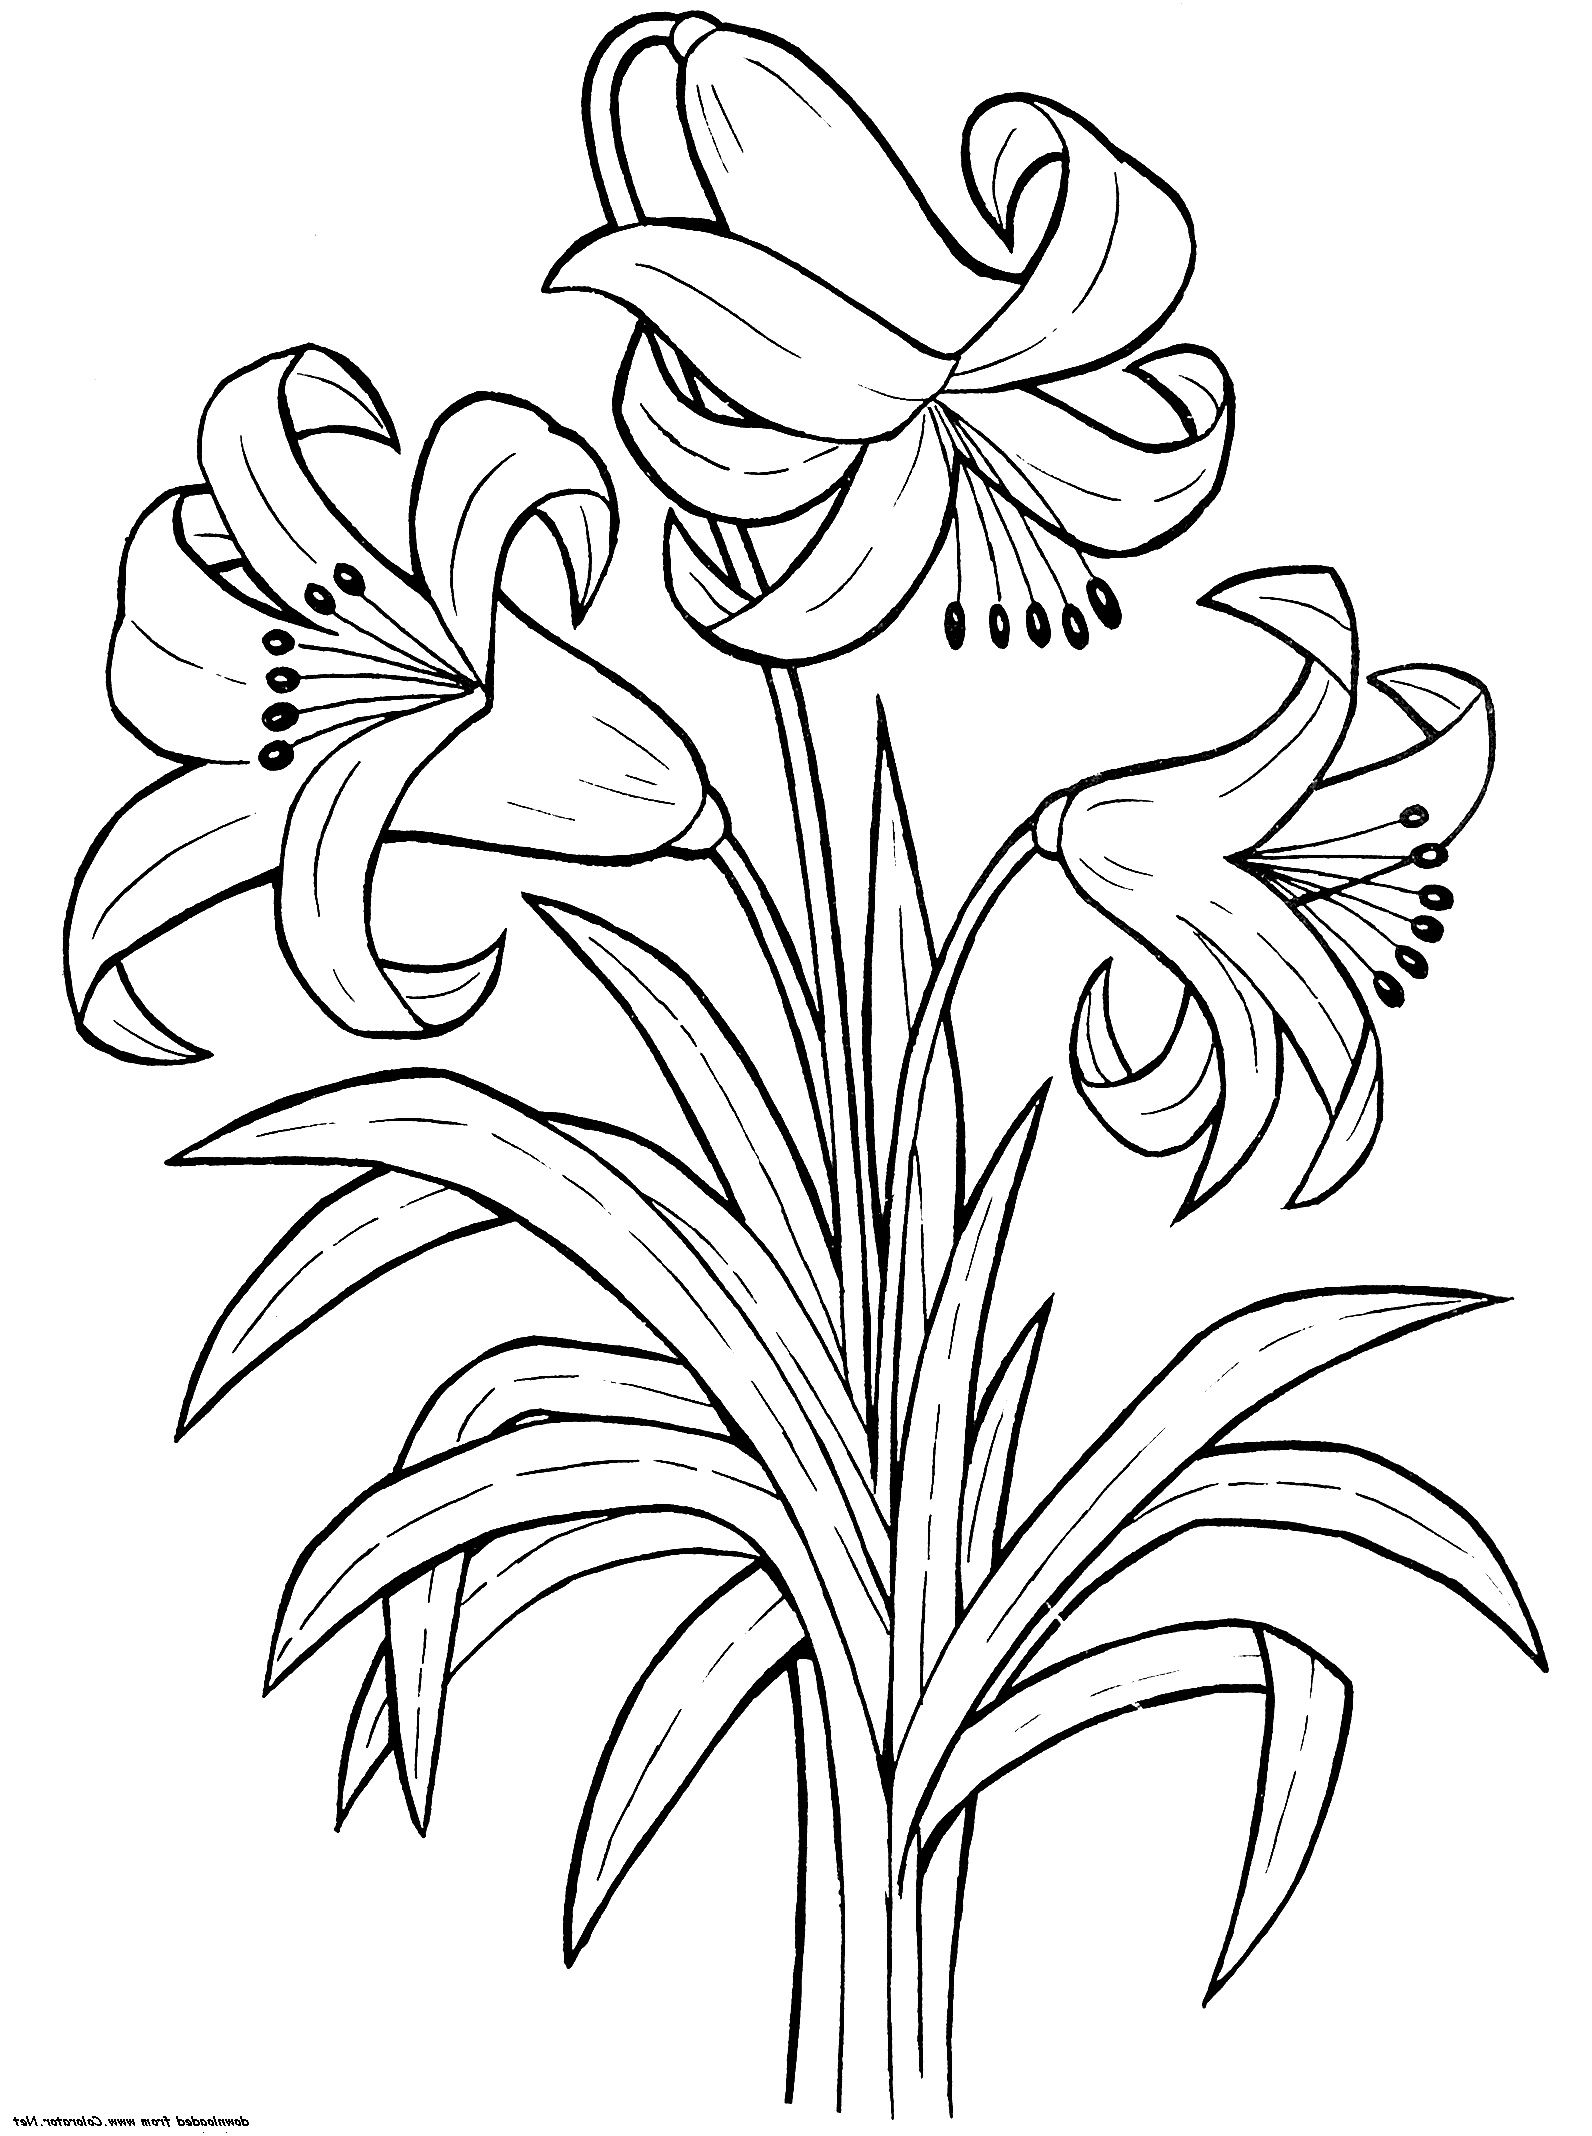 rose coloring sheet flower coloring pages printable lily flower coloring pages k5 worksheets coloring sheet rose pages coloring flower